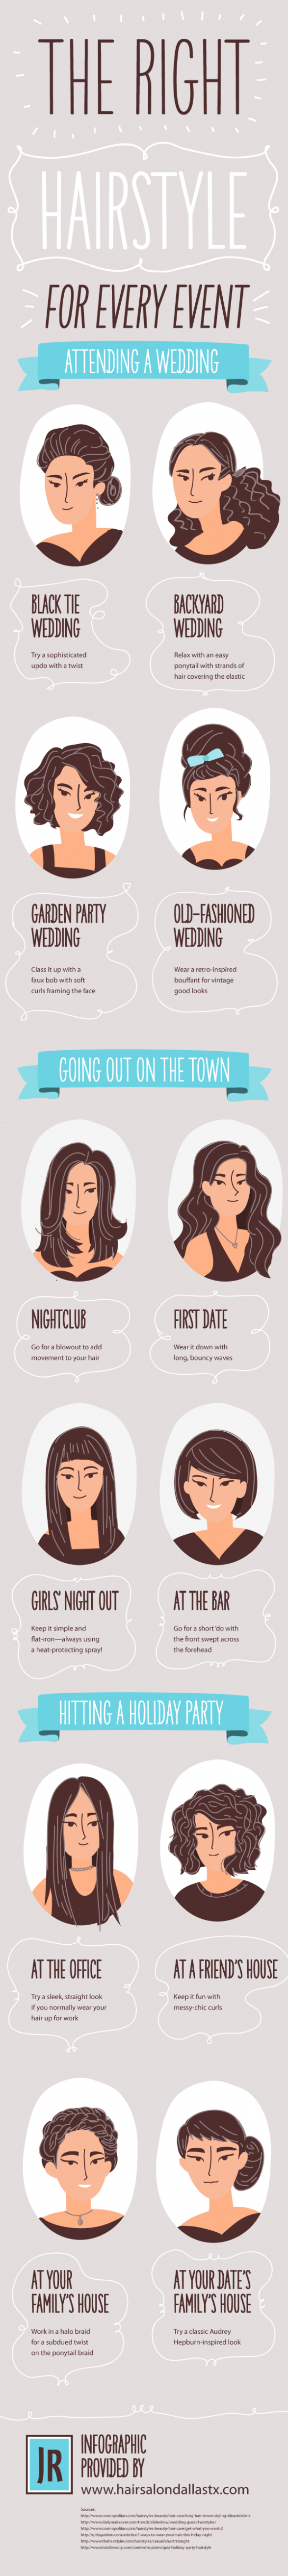 The Right Hairstyle for Every Event